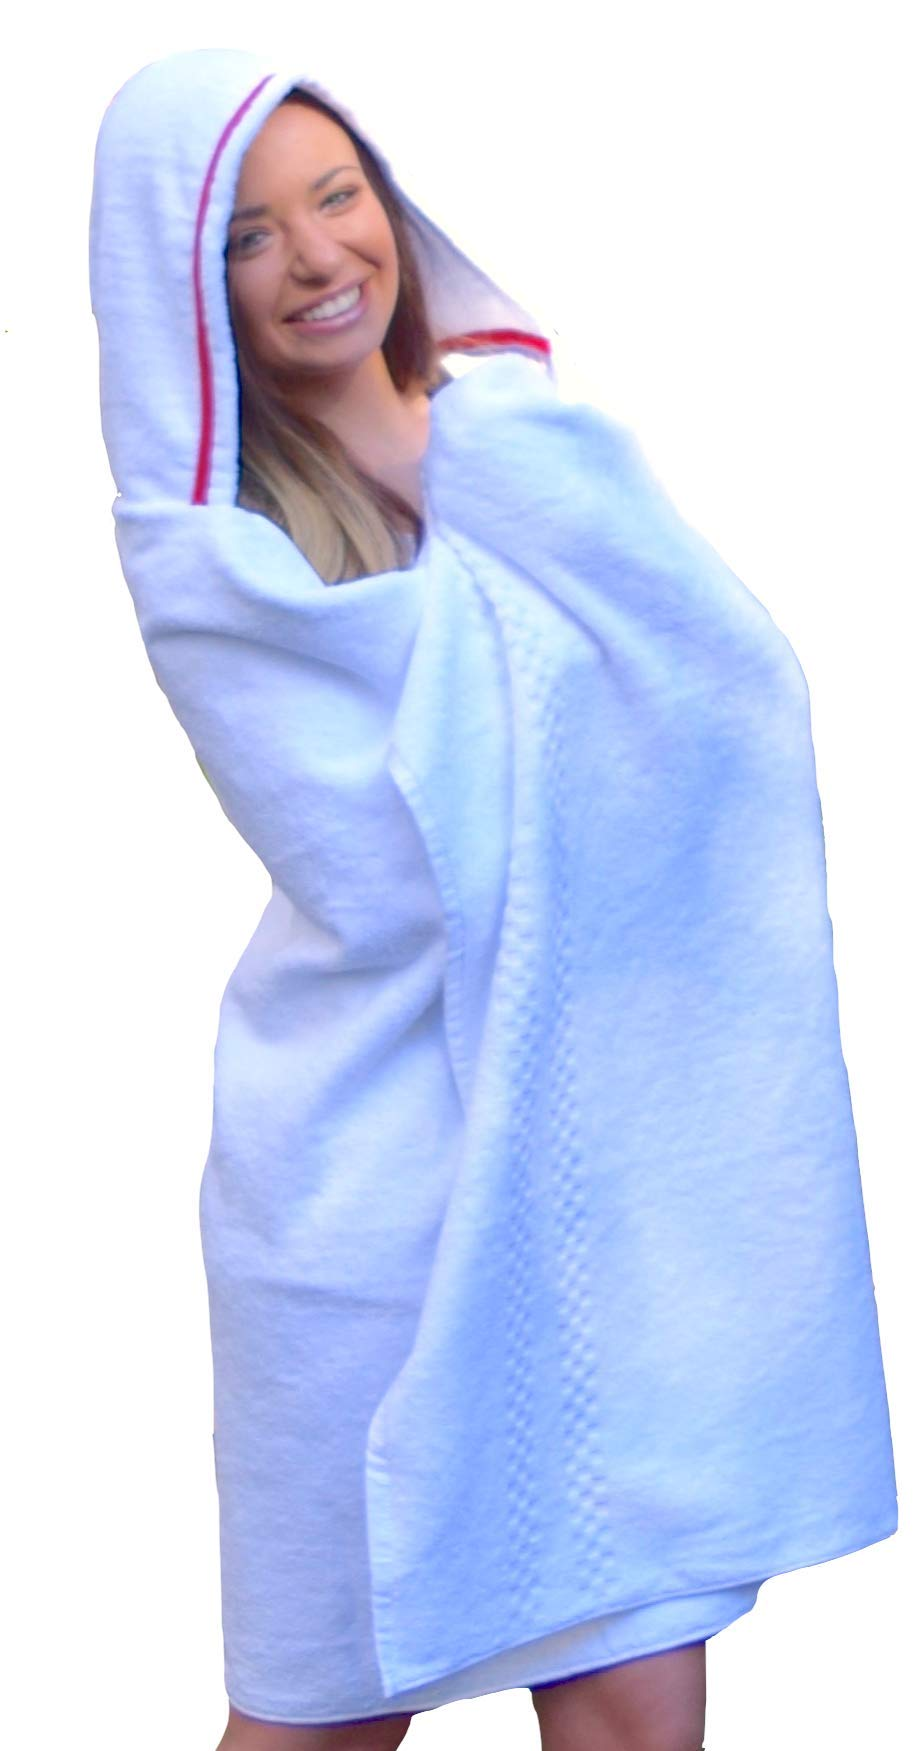 Women's Hooded Towel from TowelHoodies